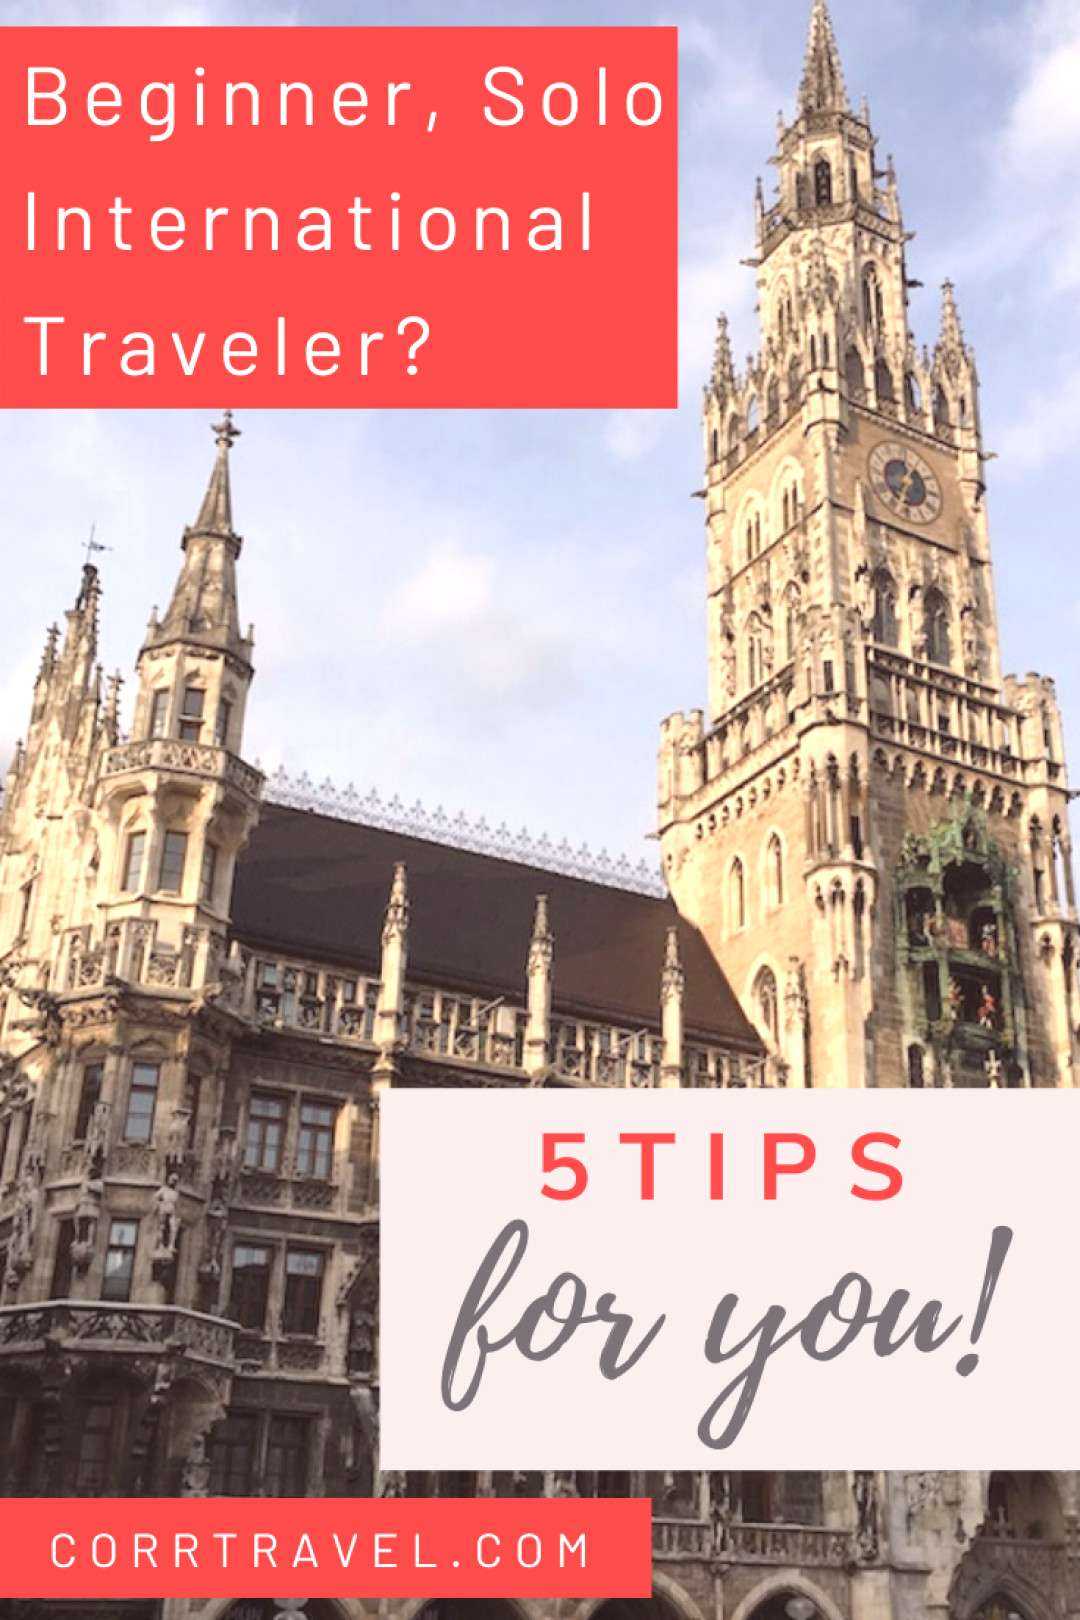 Solo Travel Tips 5 International Tips for Beginners – CORR Travel Here are 5 great internationa